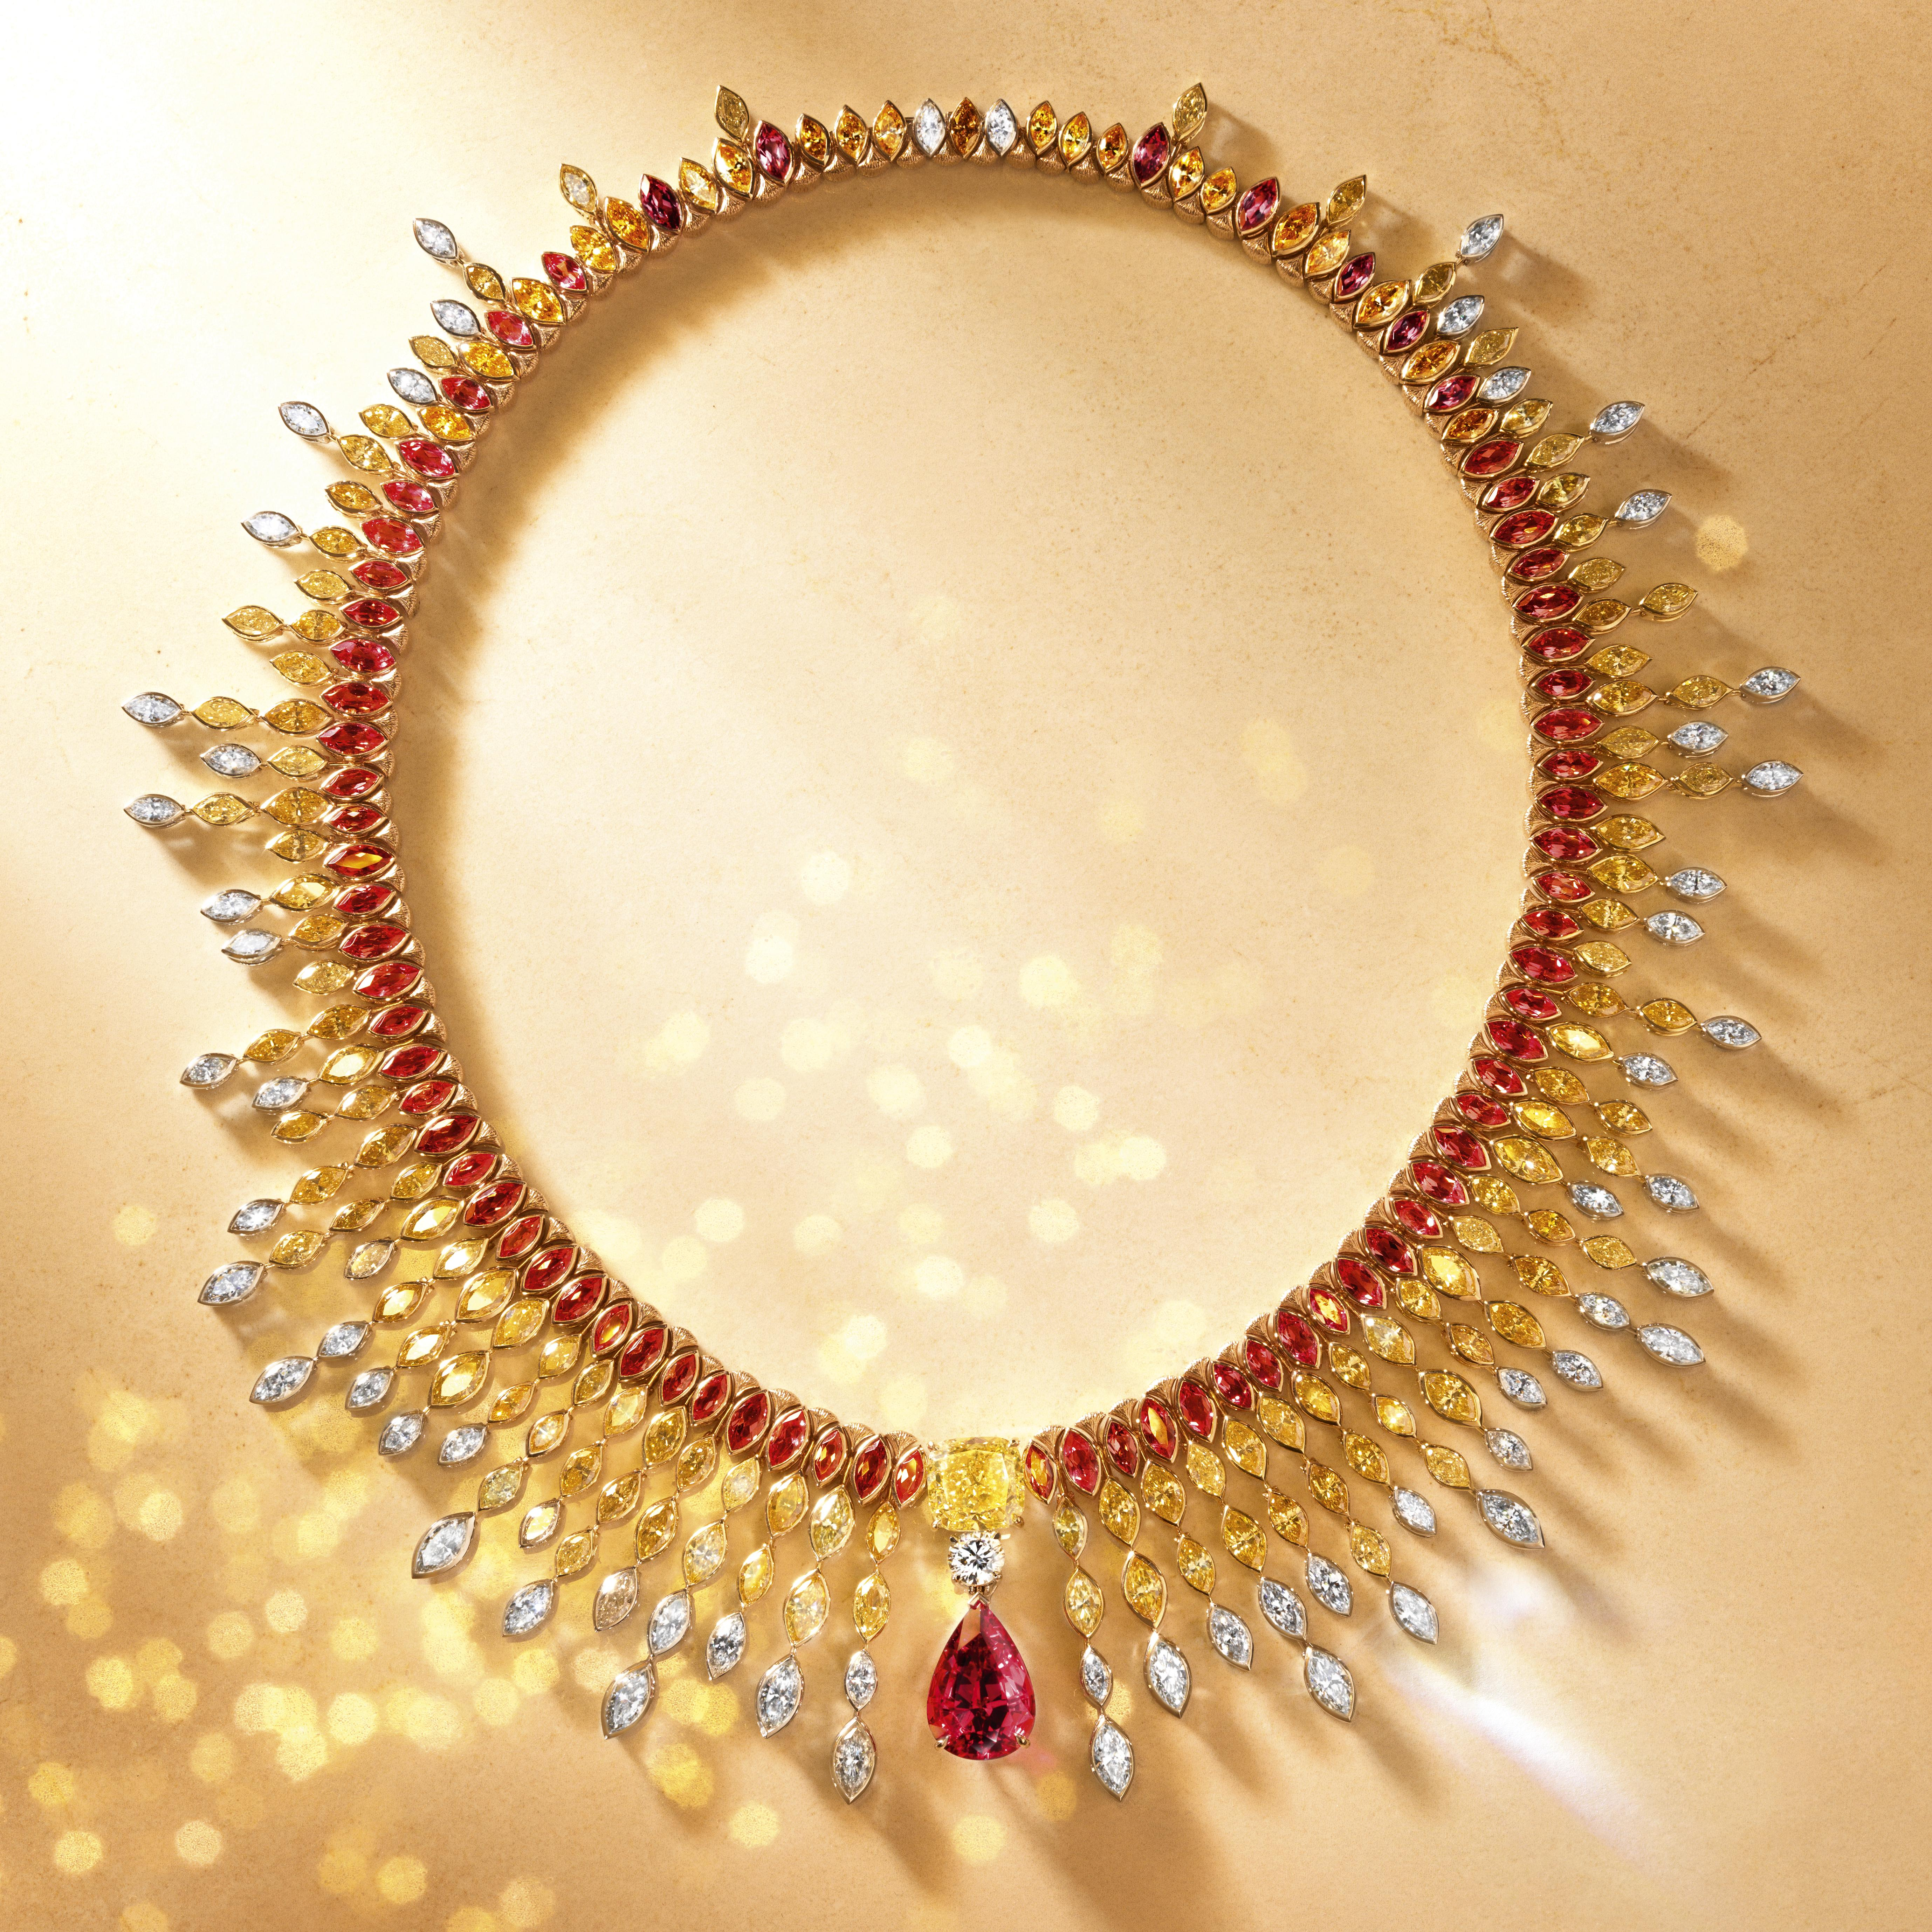 piaget high jewelry necklace, luxury jewelry